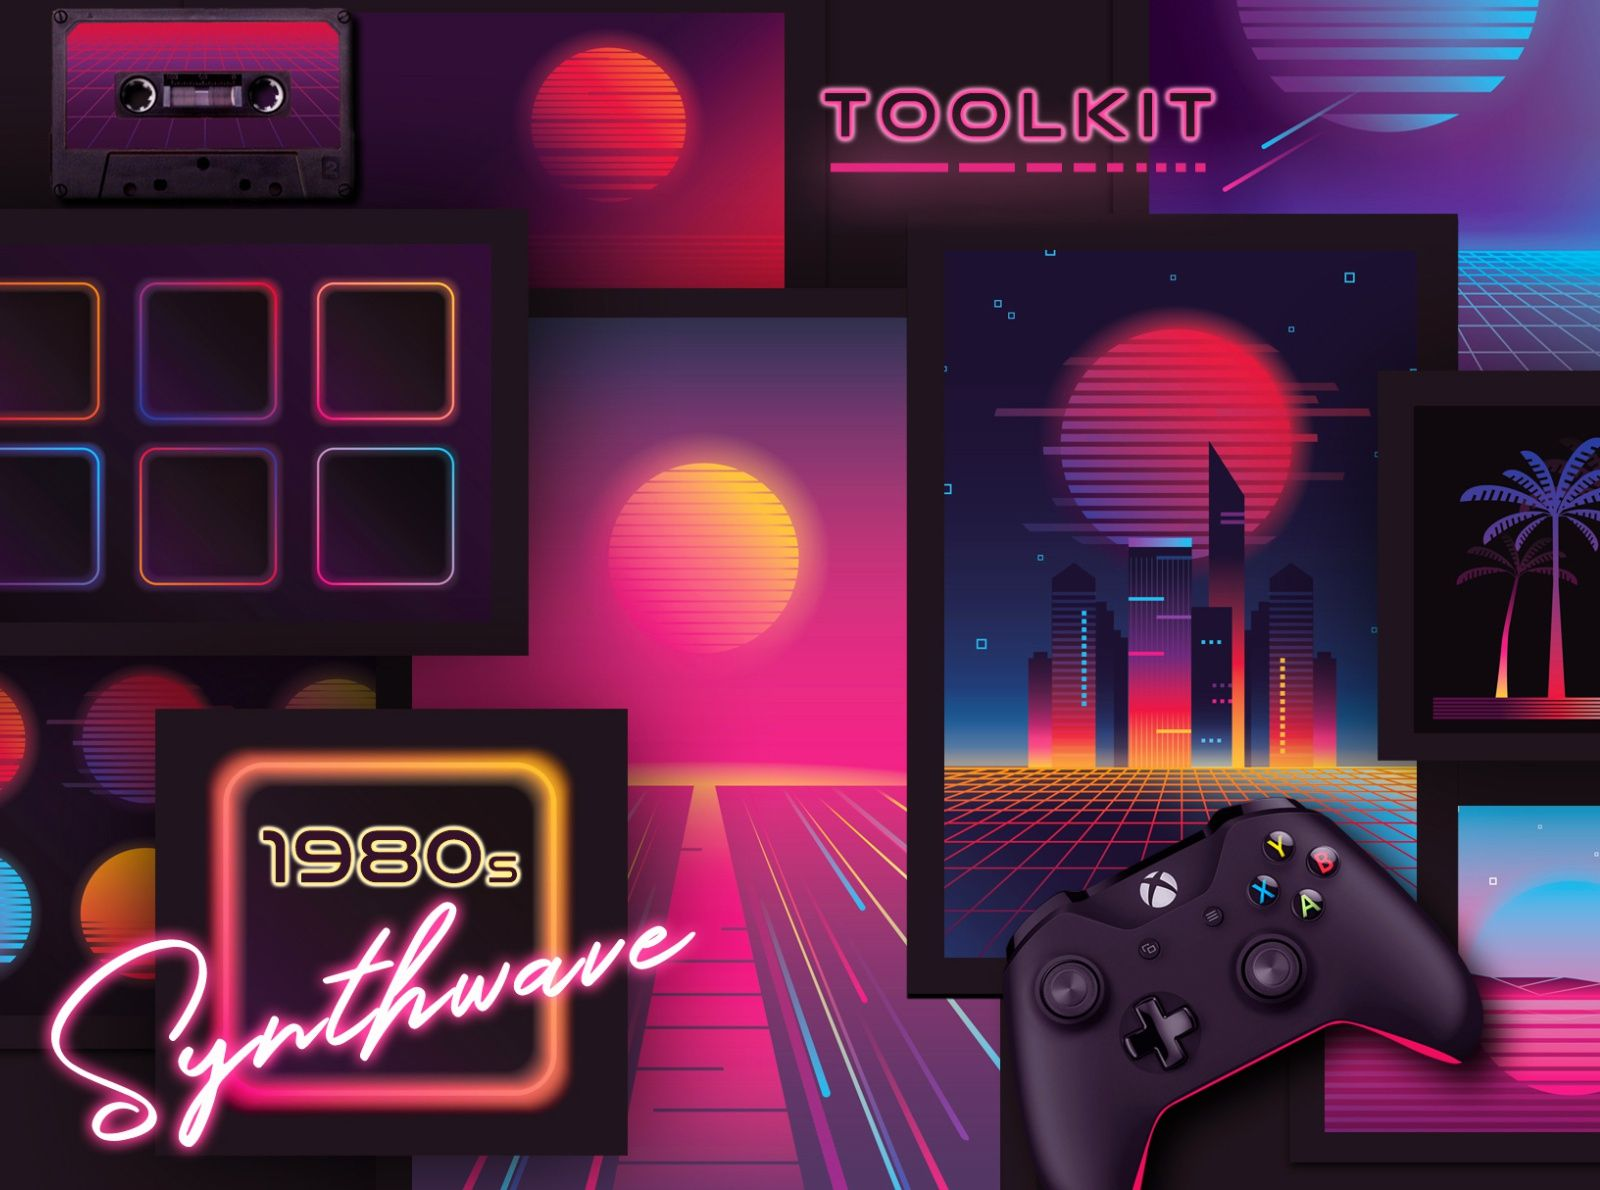 1980s Synthwave Toolkit by Diana Hlevnjak in 2020